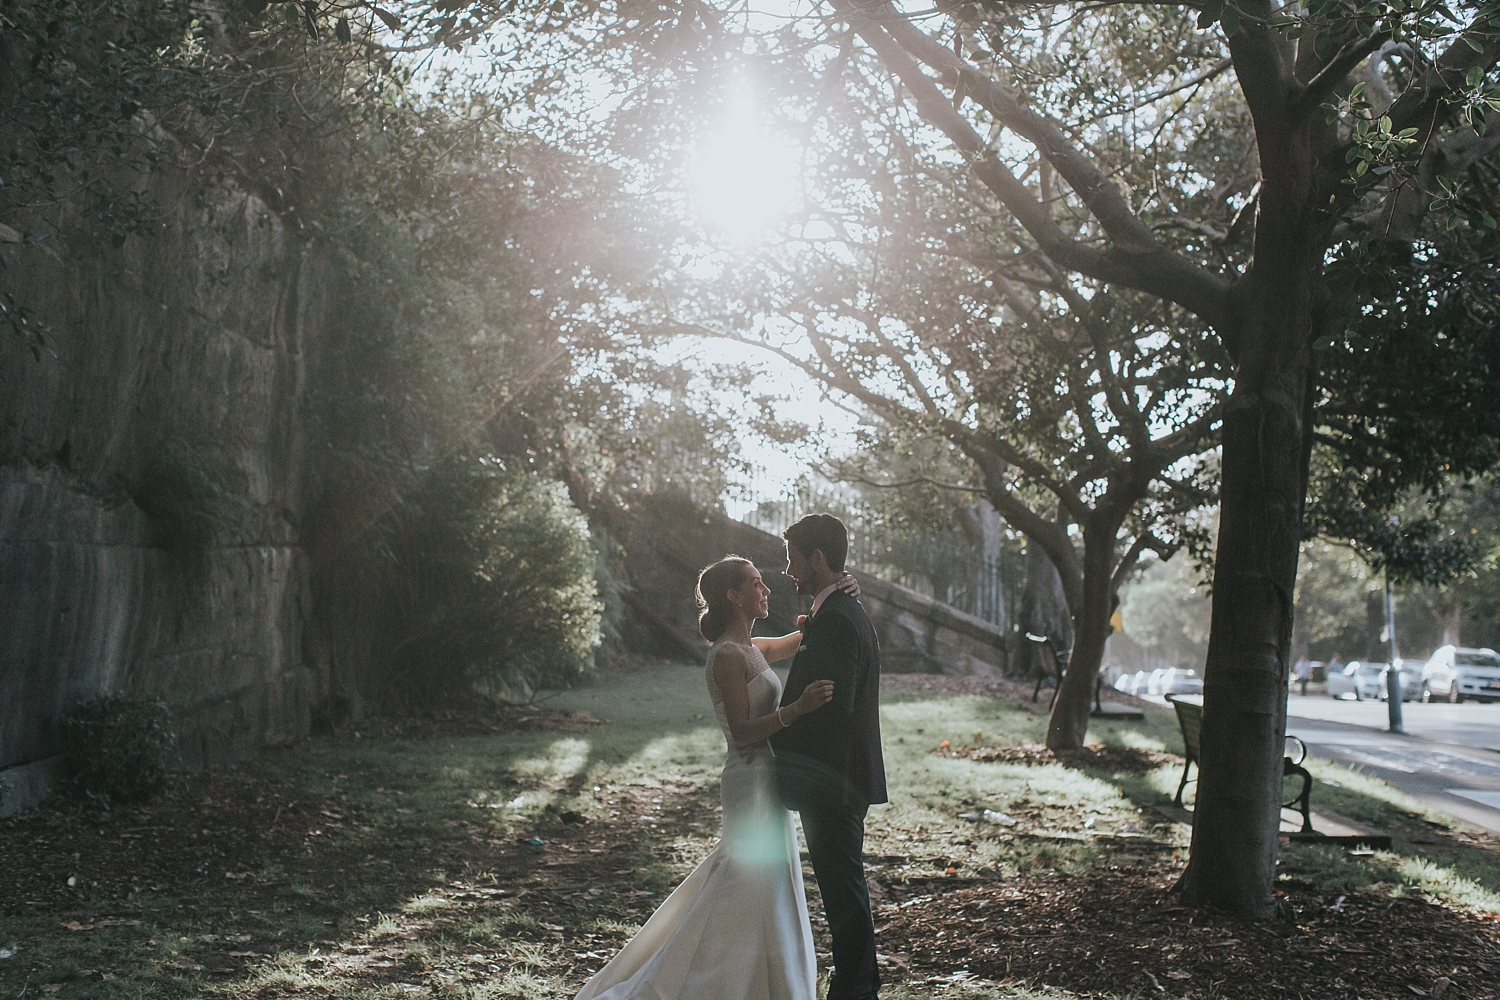 sydney wedding photography by jonathan david